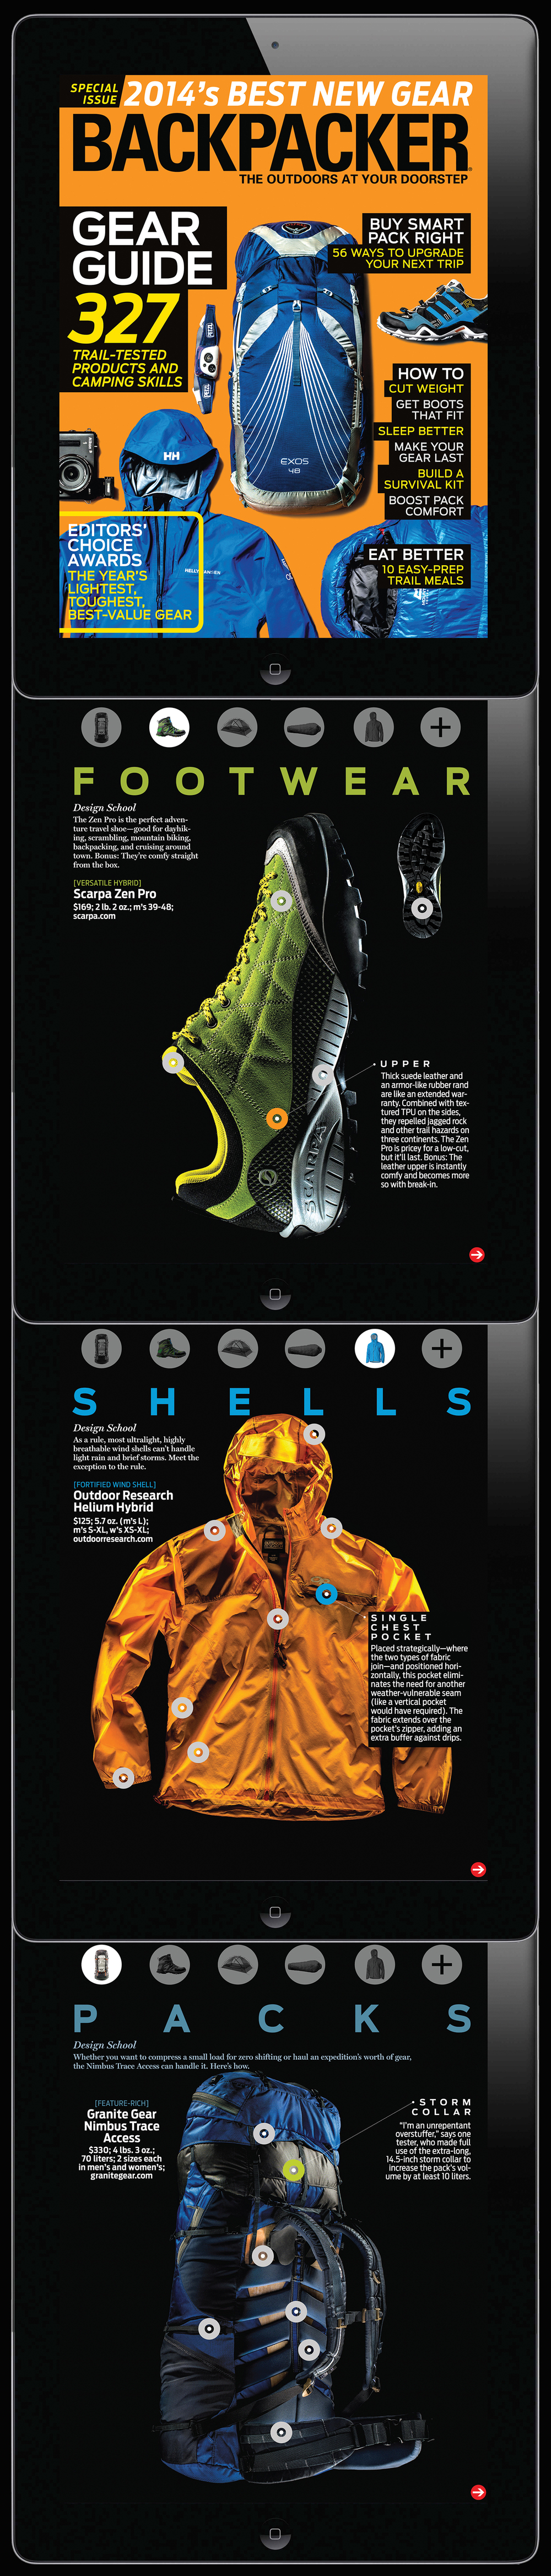 Backpacker's annual gear guide gets full interactivity with touch point specs.